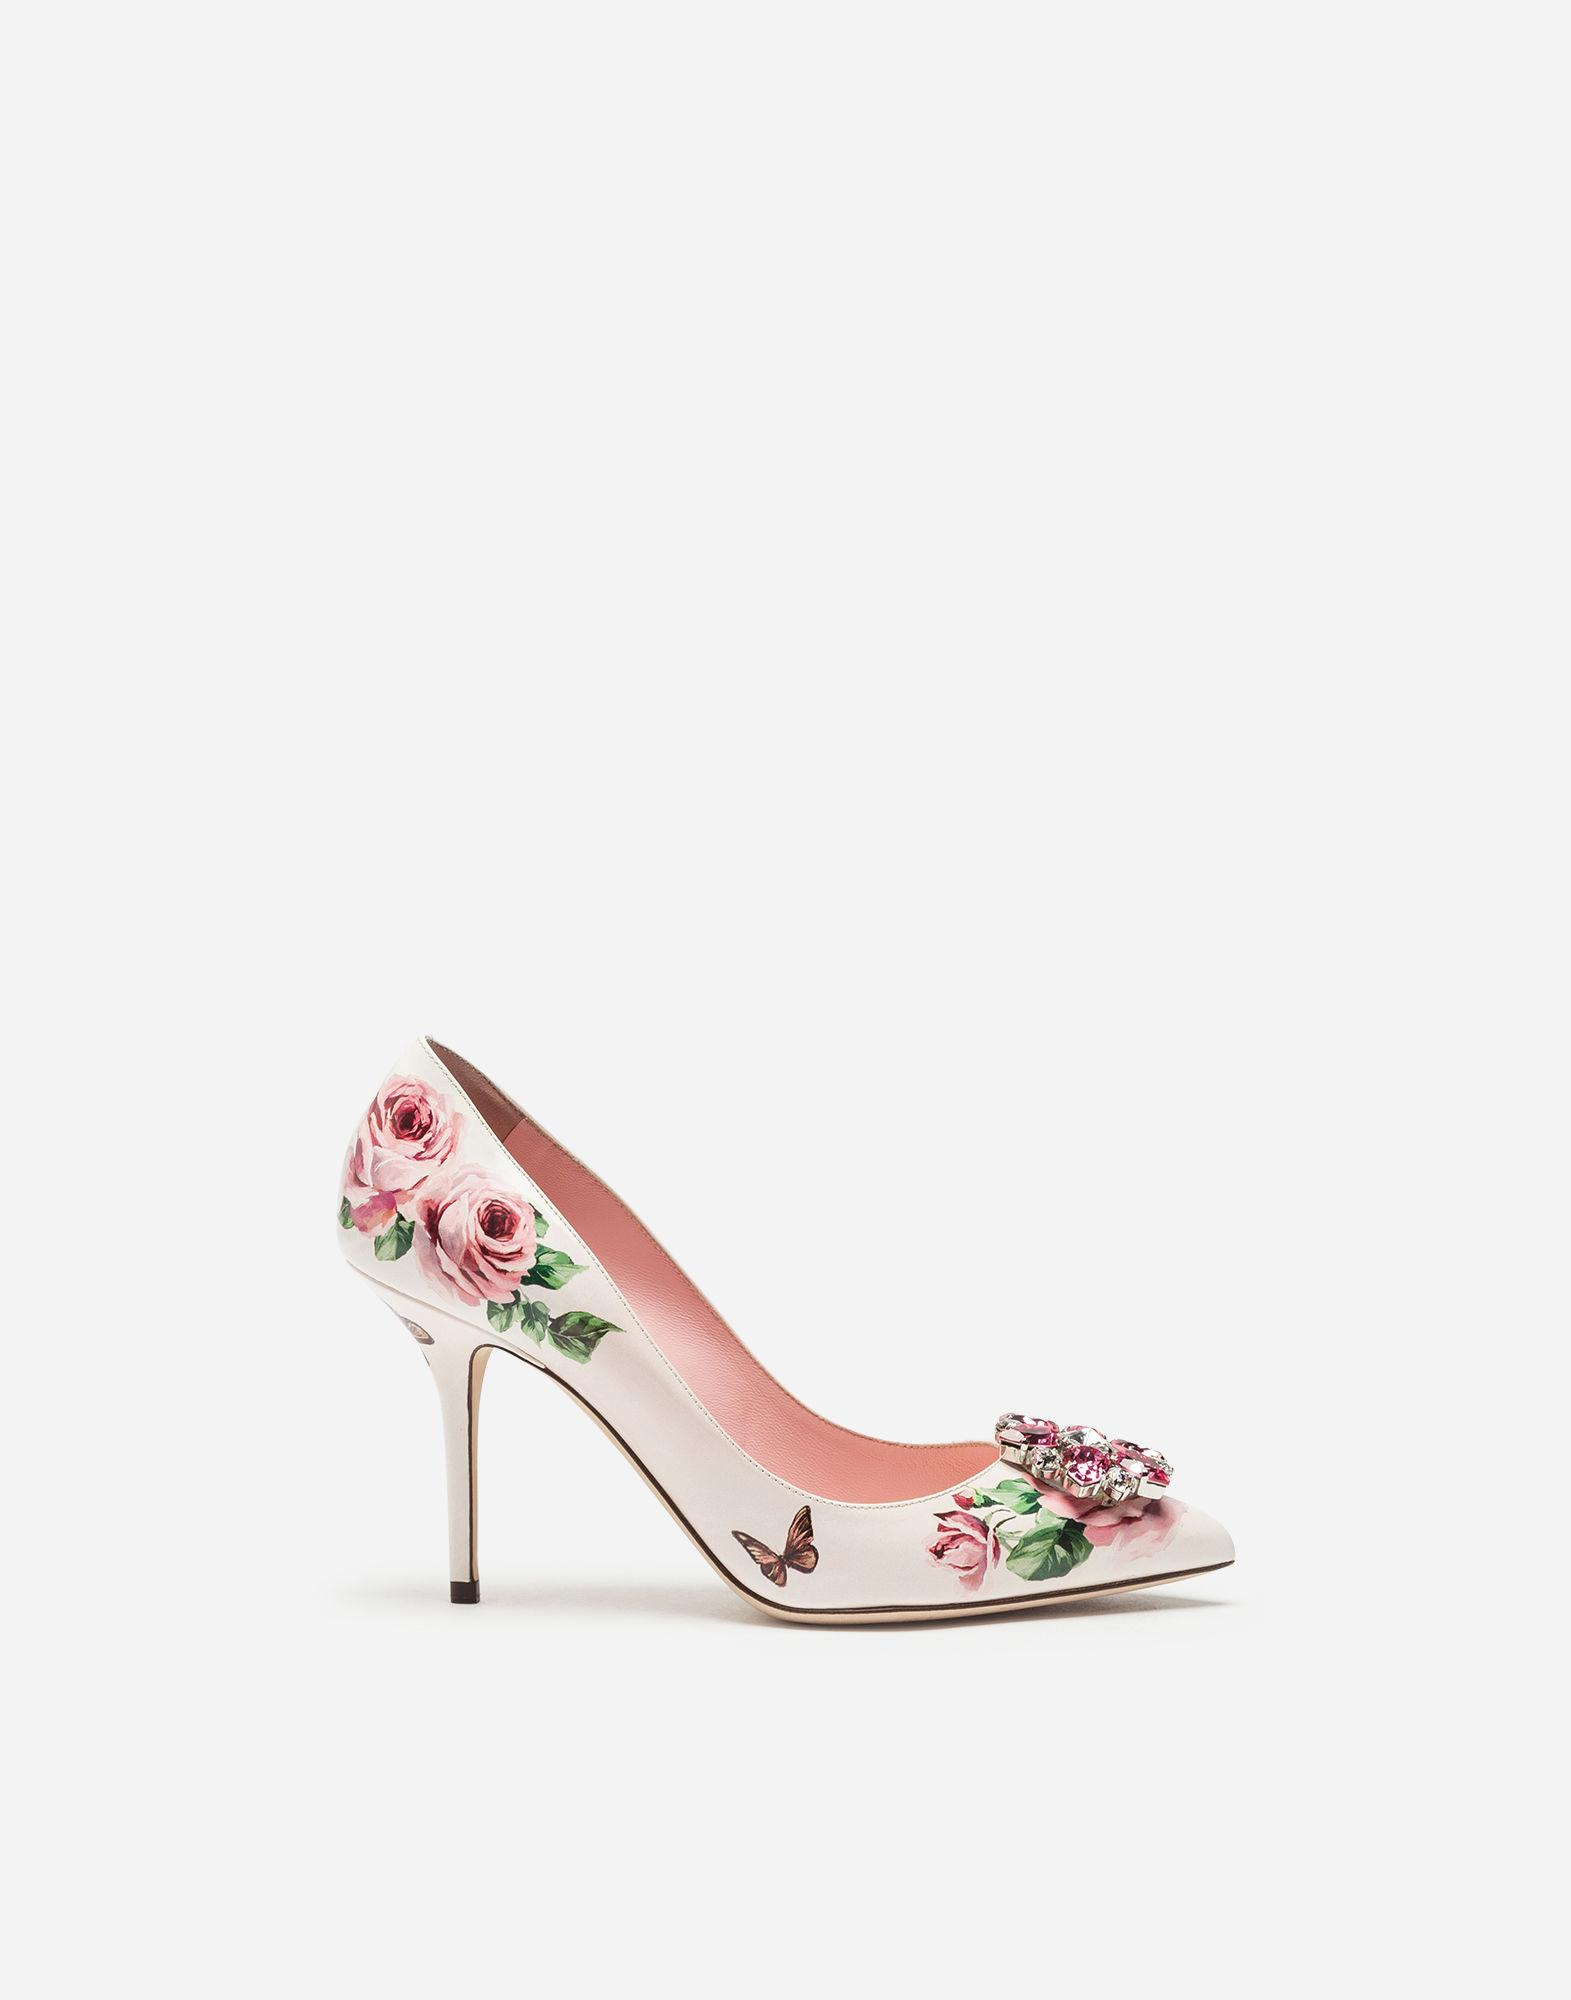 25ea12473283 Dolce   Gabbana Pumps In Printed Patent Leather With Brooch In White  Pink  Floral